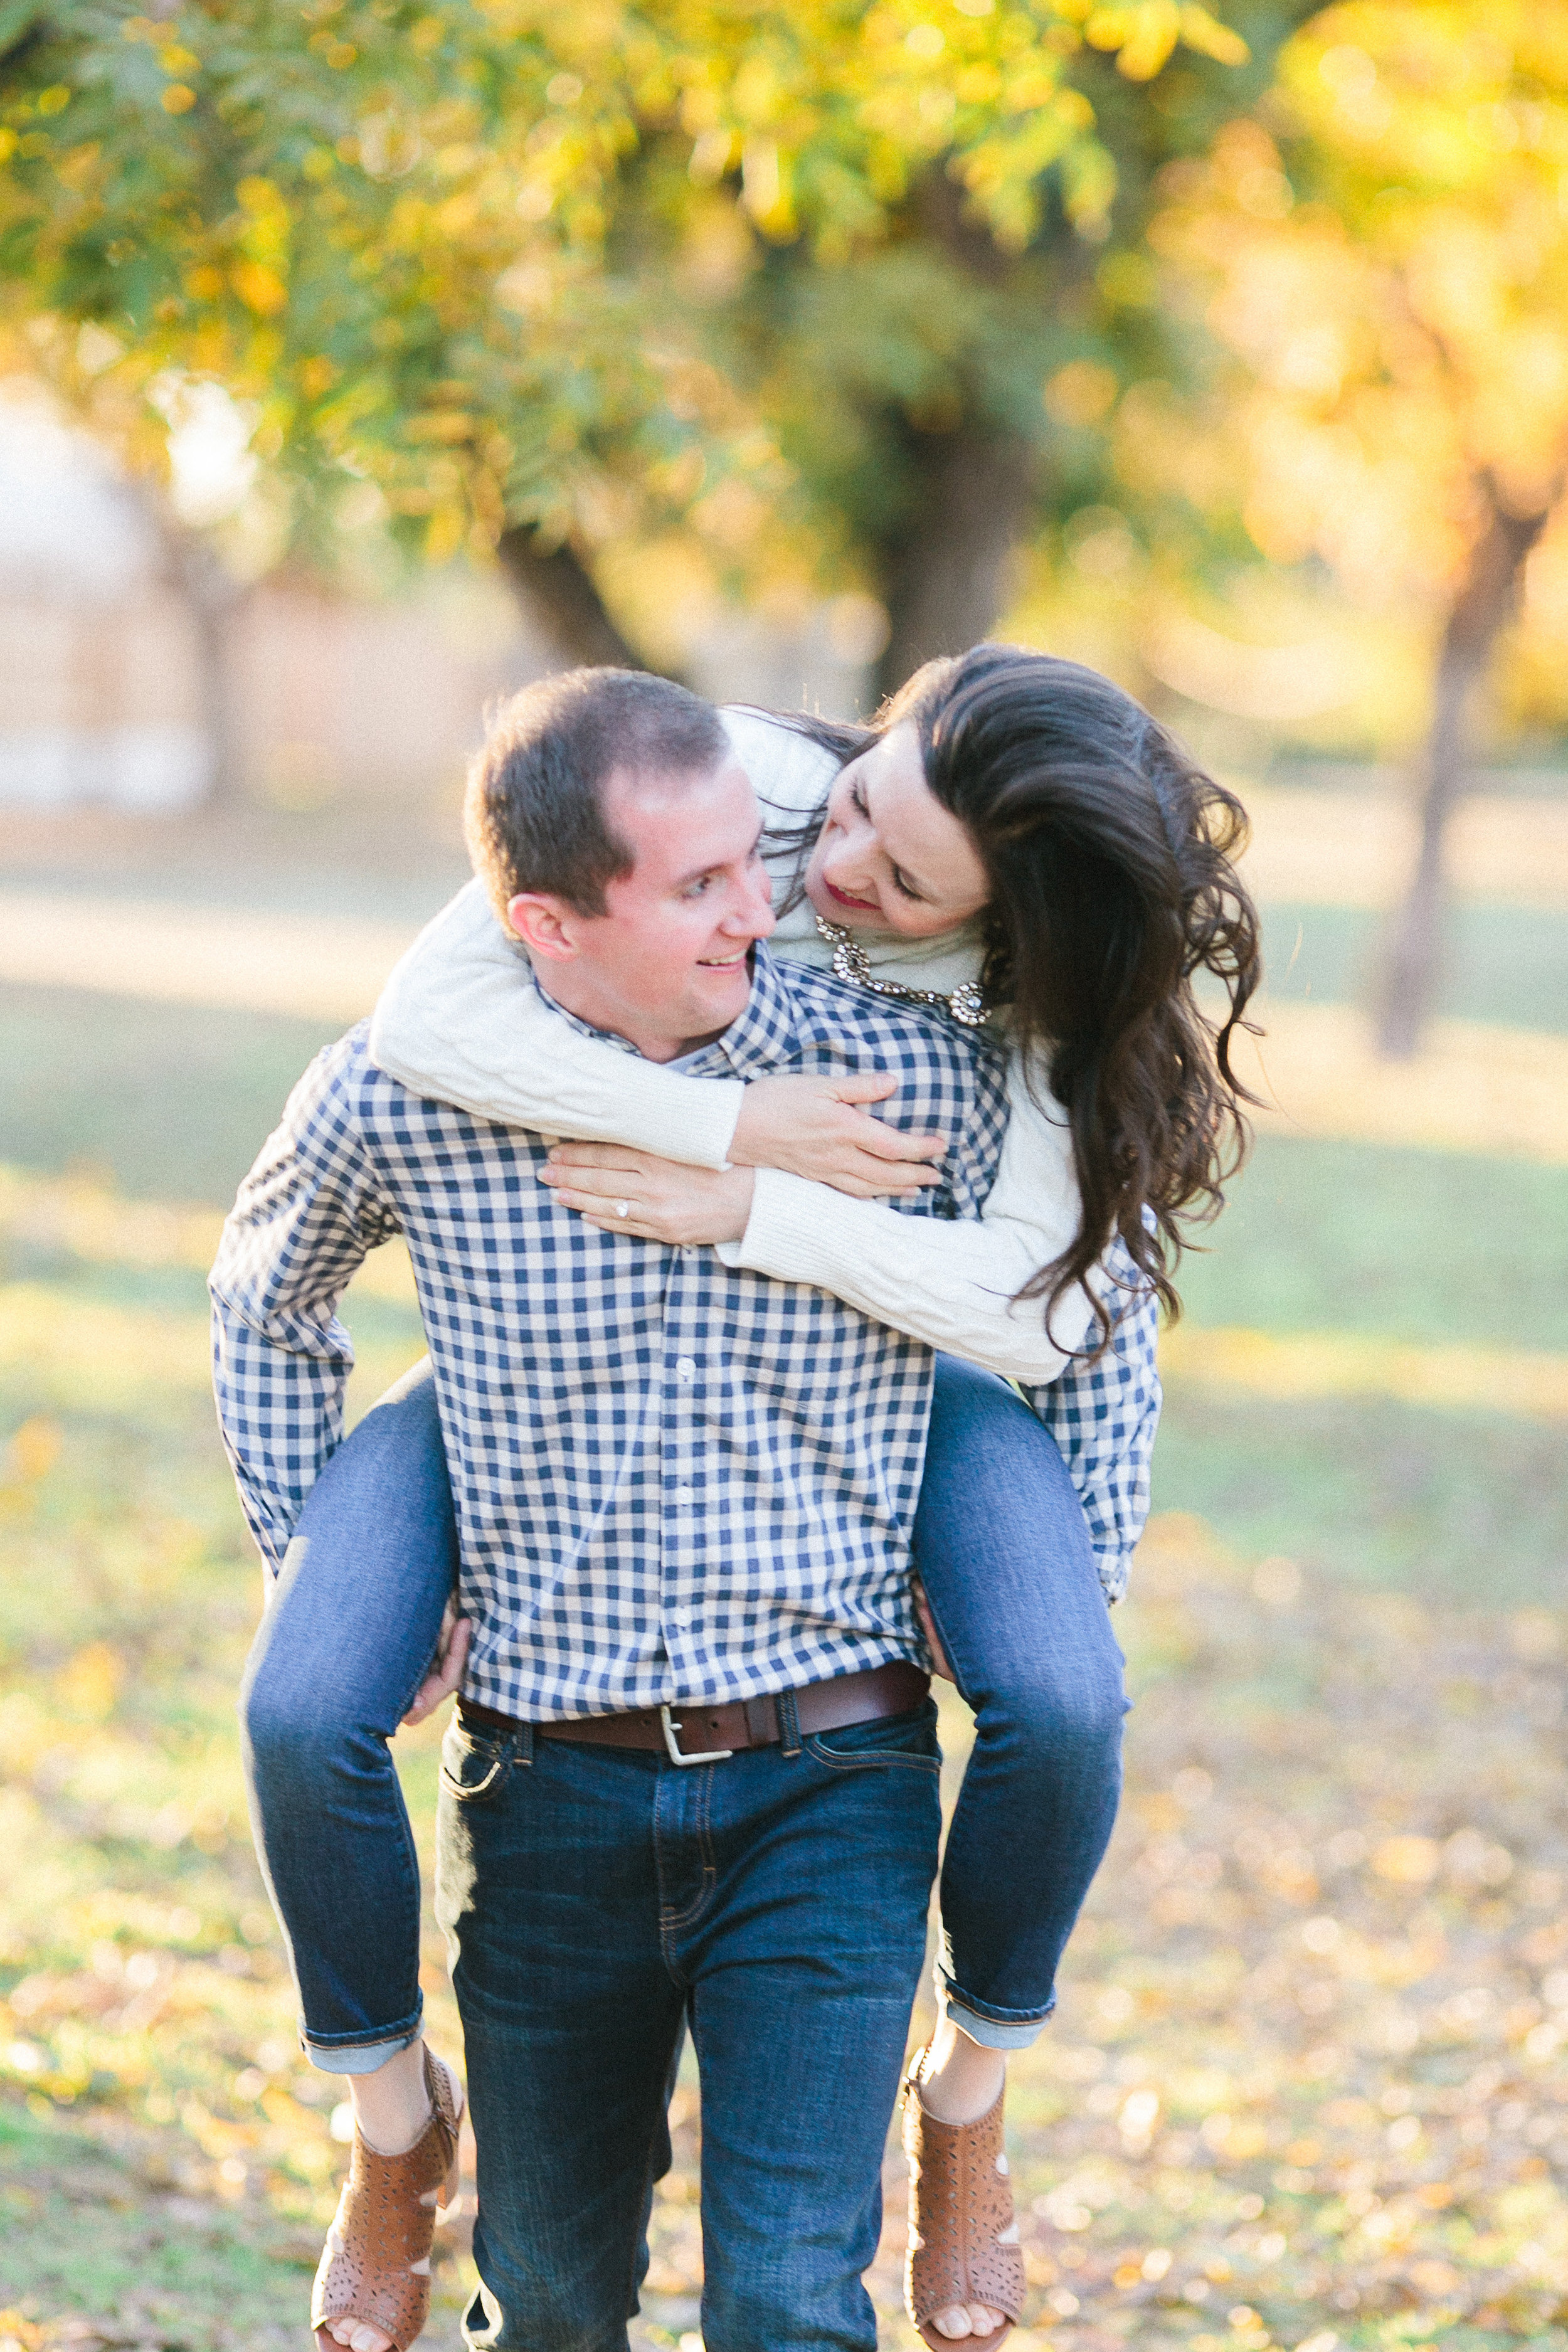 Arizona Engagement Shoot at The Farm: Alex & Charles- Konsider It Done- AZ Arizona Wedding & Event Planner, Designer, Coordinator Planning in Scottsdale, Phoenix, Paradise Valley, Tempe, Gilbert, Mesa, Chandler, Tucson, Sedona